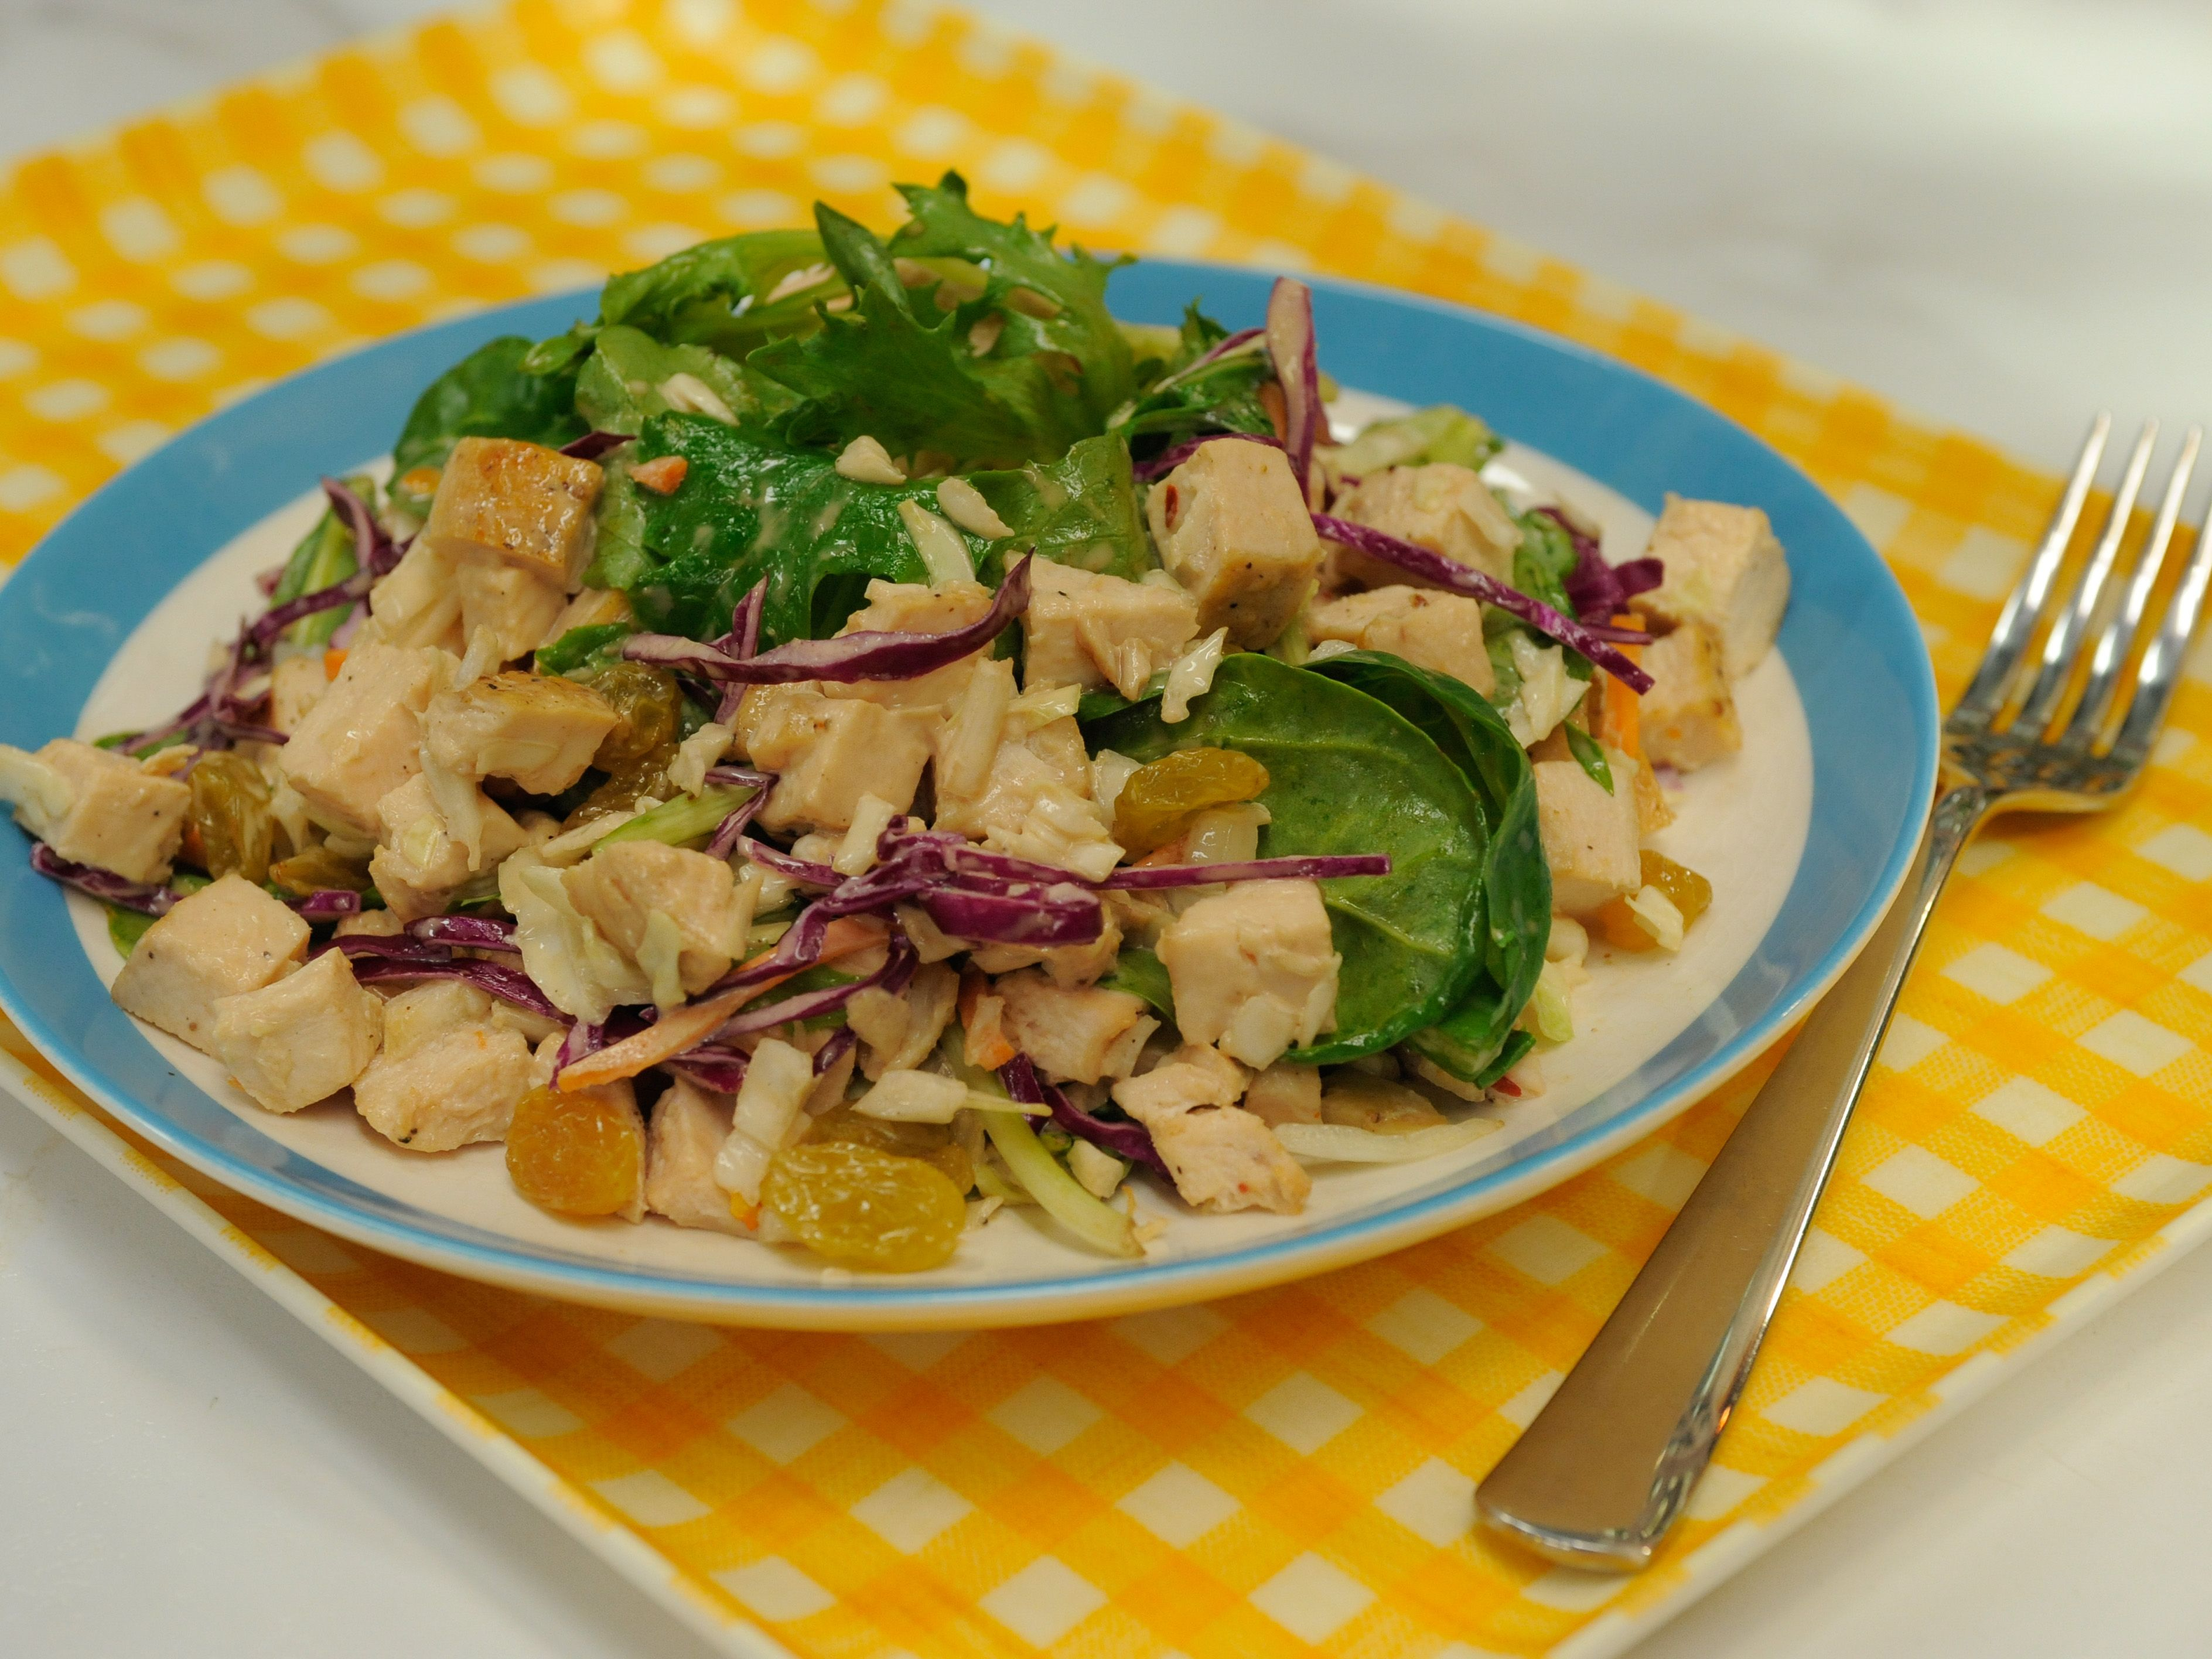 Sunnys nunya business chinese chicken salad reet forumfinder Choice Image